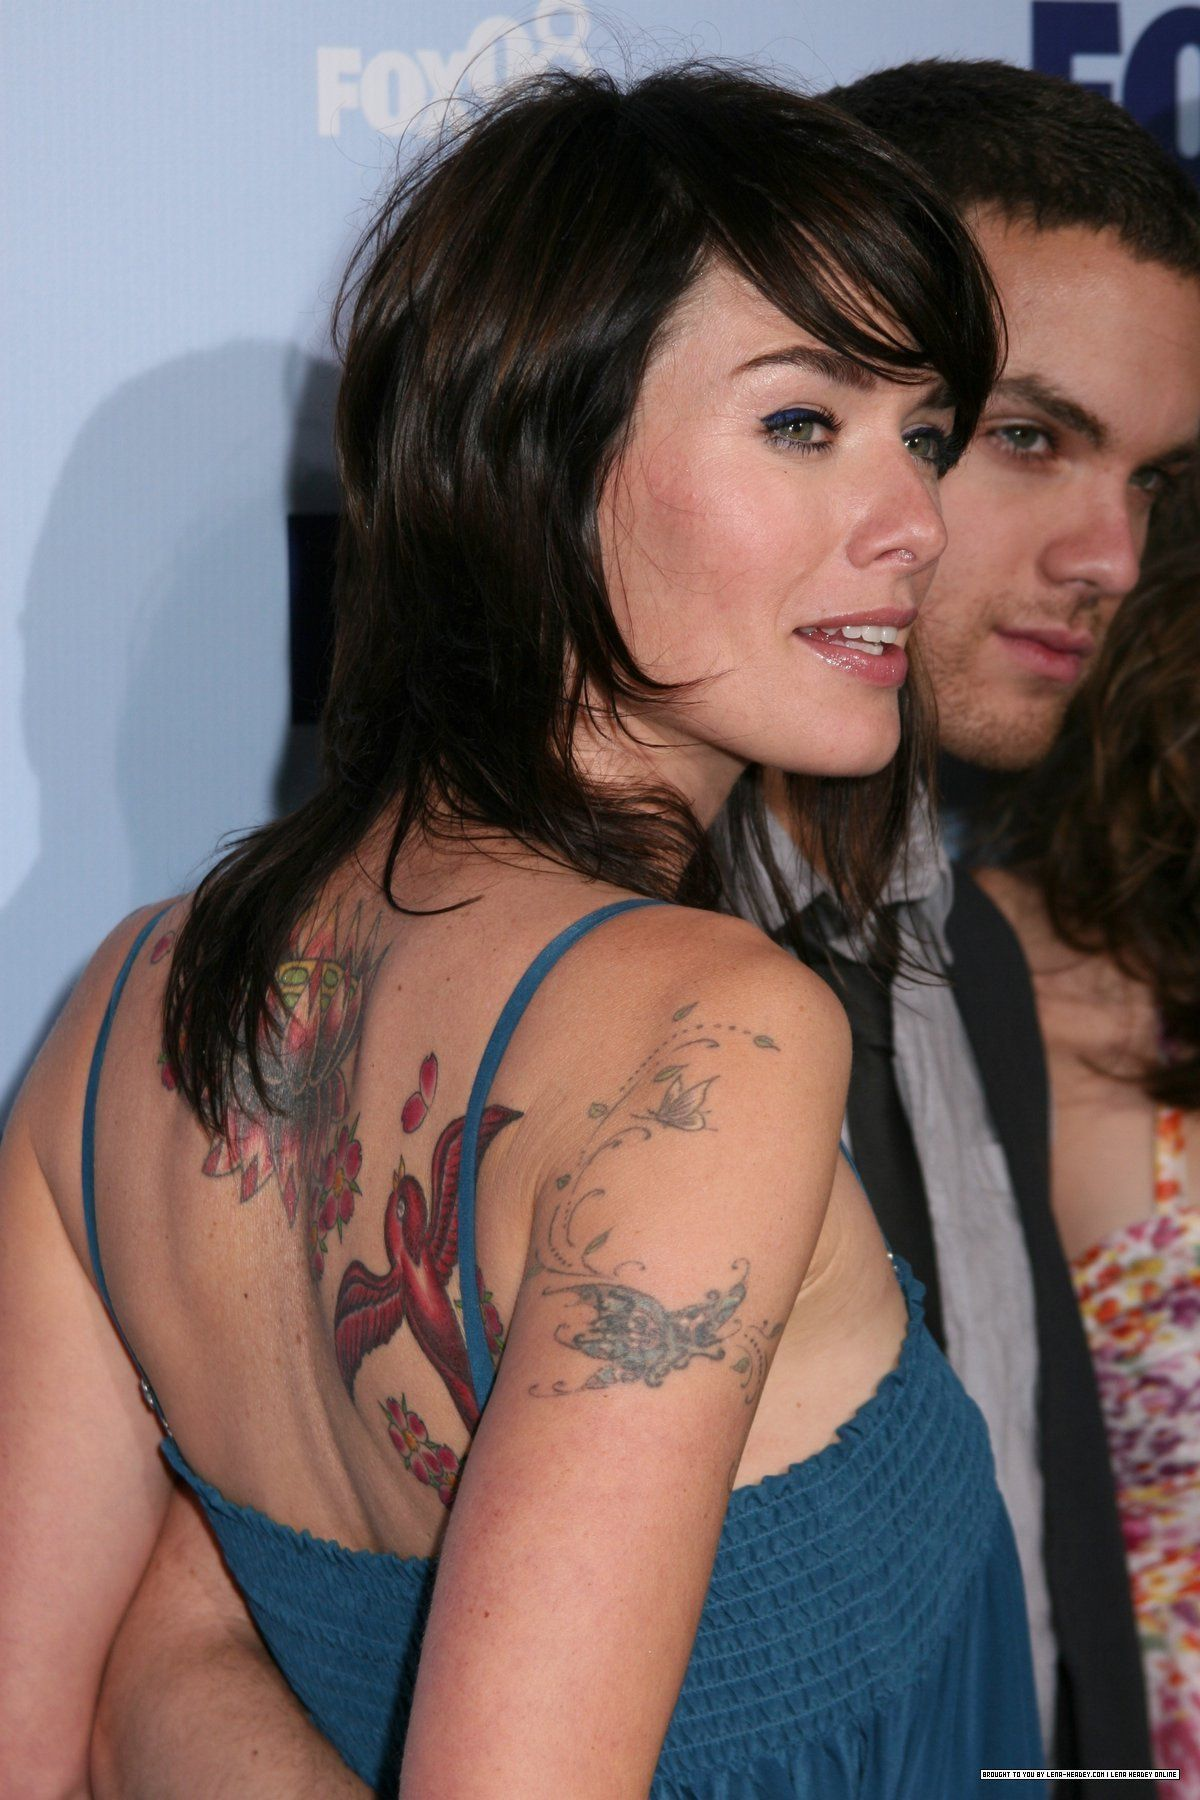 Lena And Her Tattoos Hair And Makeup Lena Headey